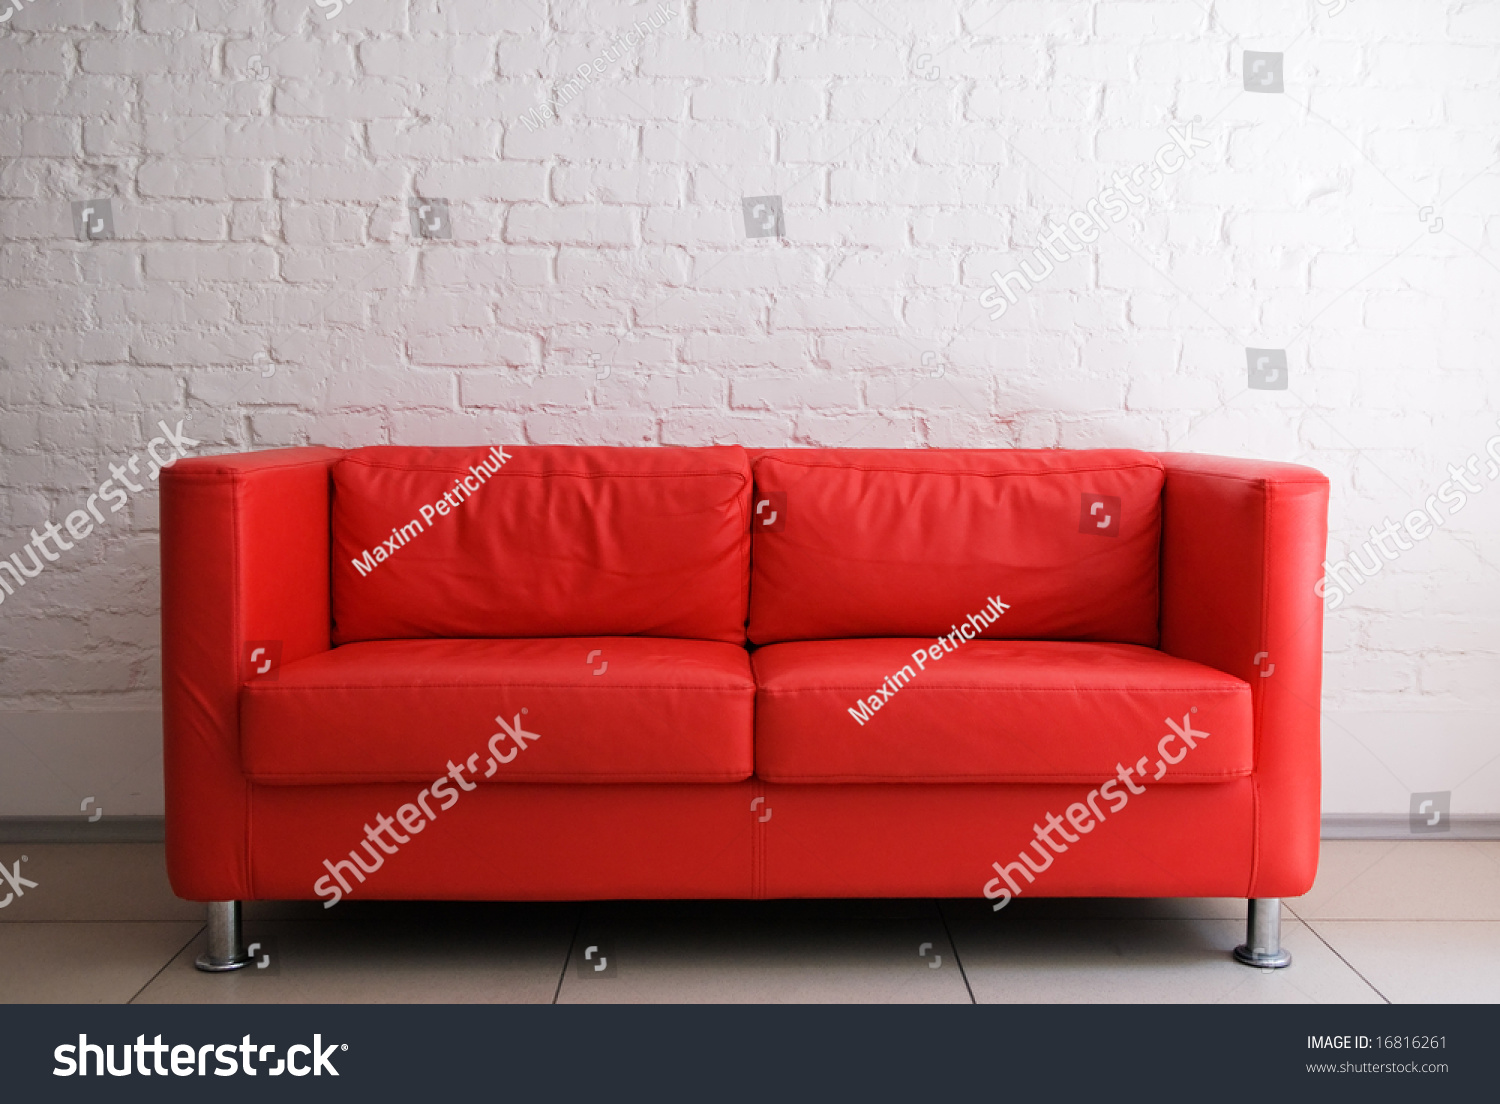 Red And White Sofa » Home Design 2017